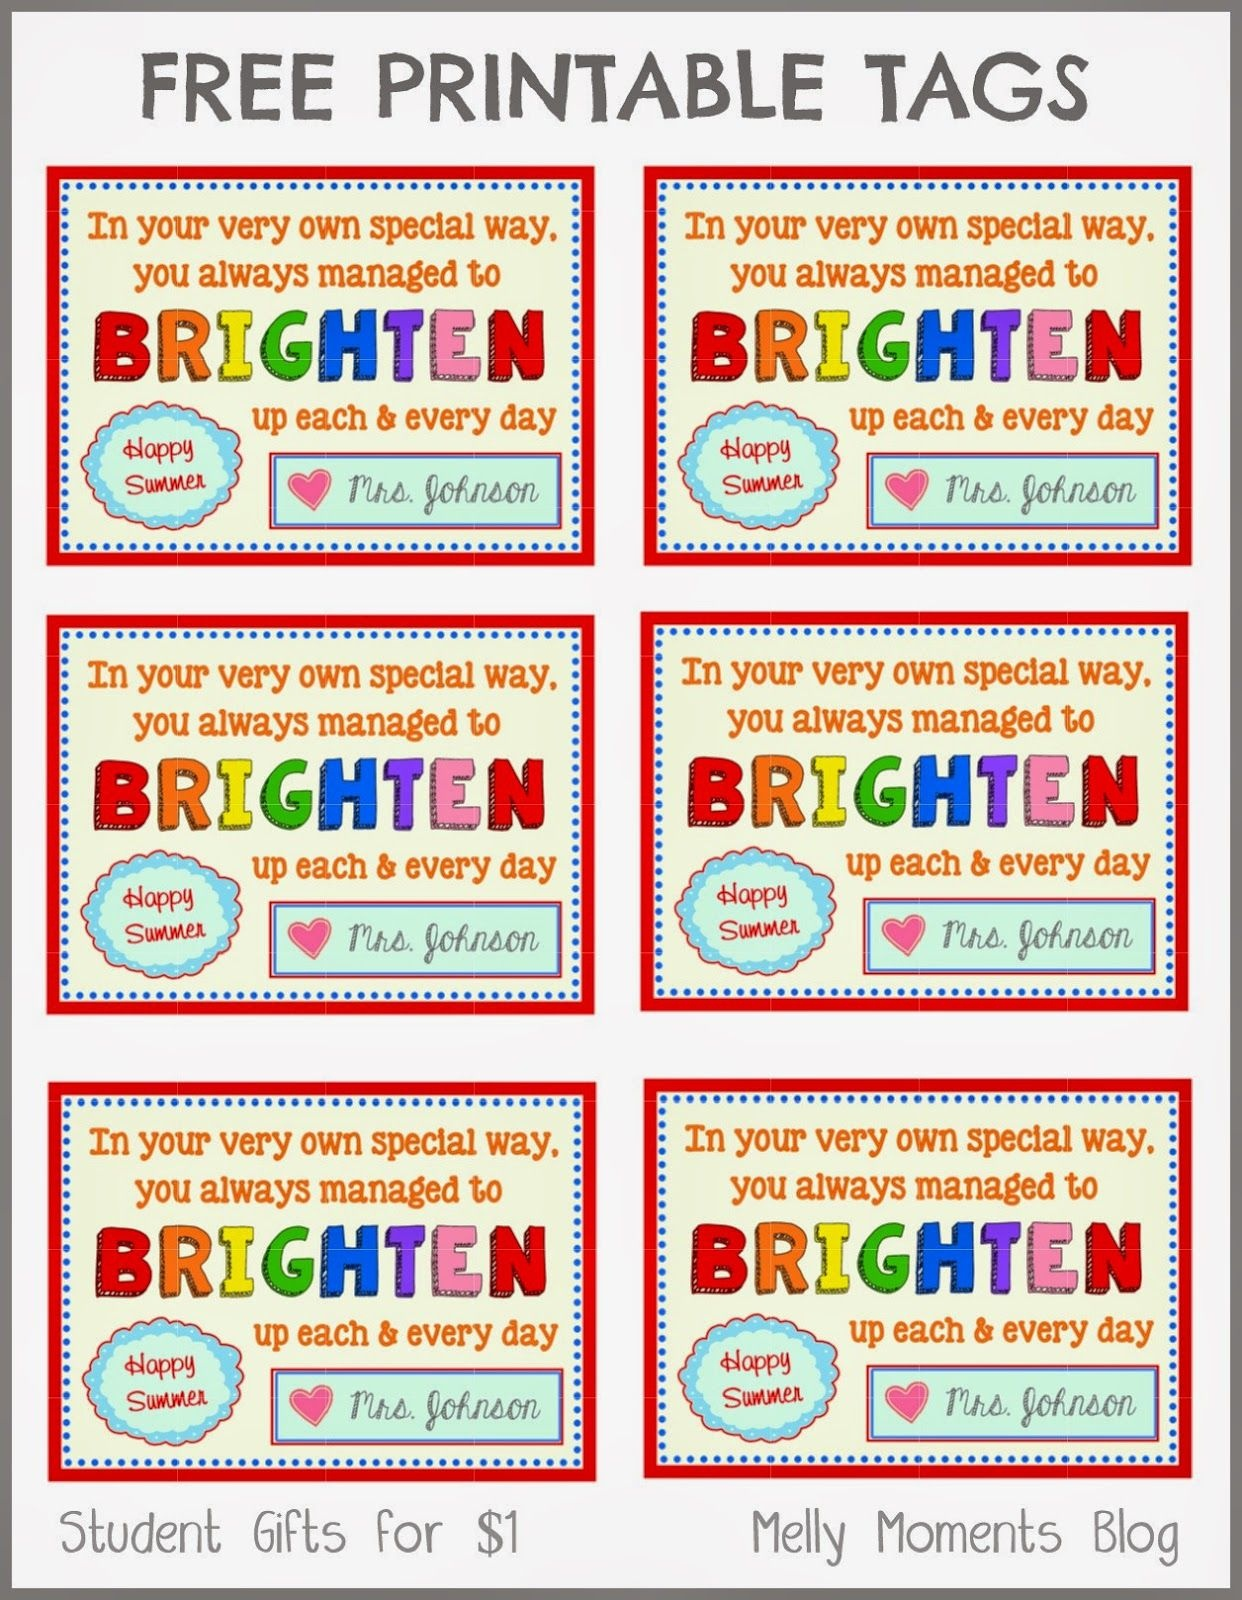 Free End Of Year Gift Tag Printables From Teacher To Student - Free Printable Gift Tags For Bubbles